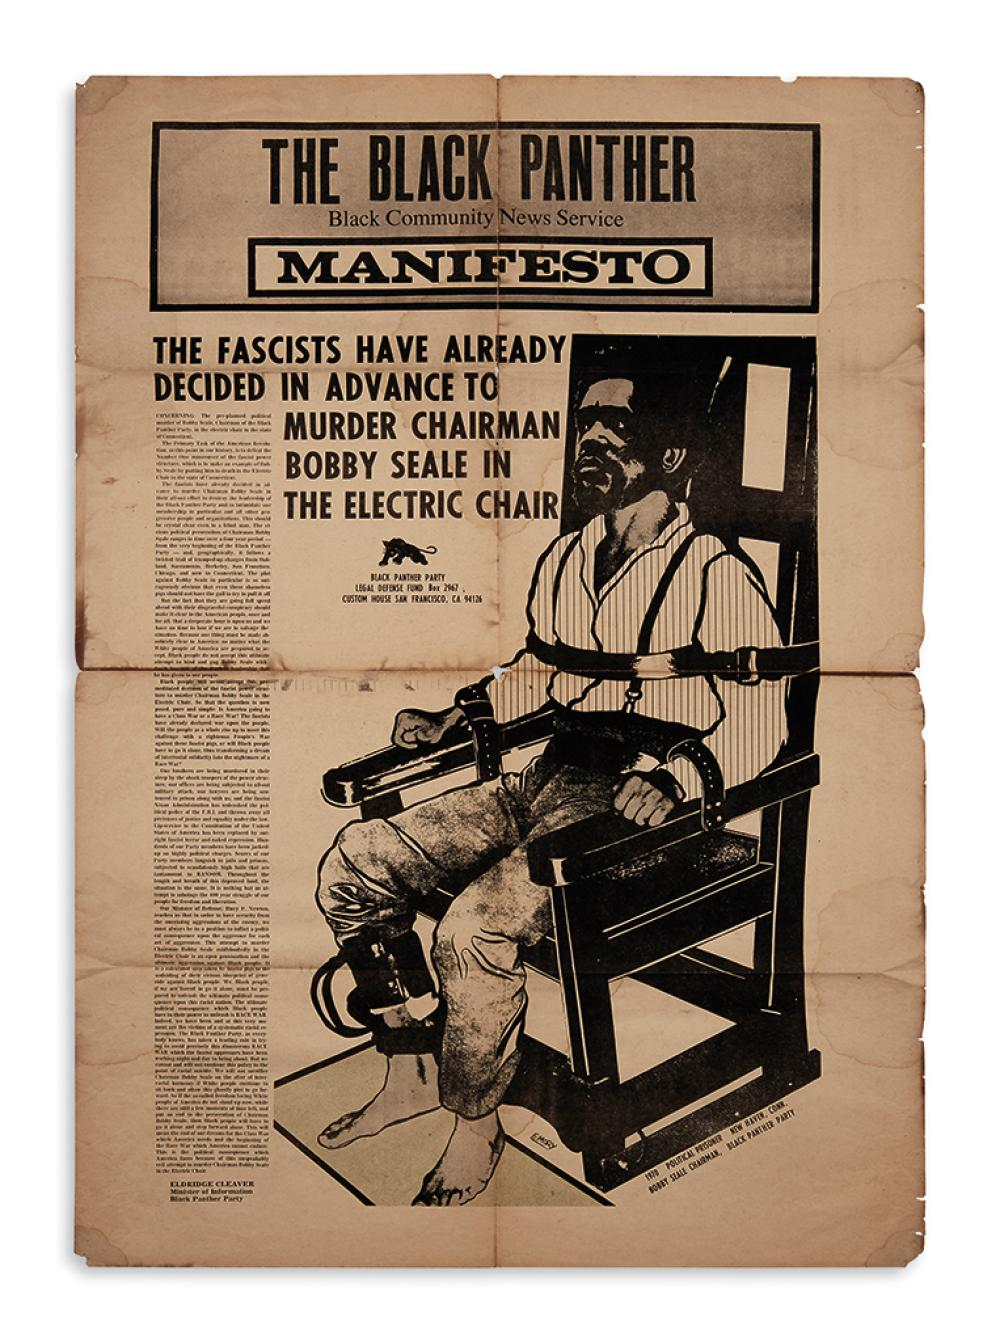 (BLACK PANTHERS.) Douglas, Emory; artist. The Black Panther Manifesto: